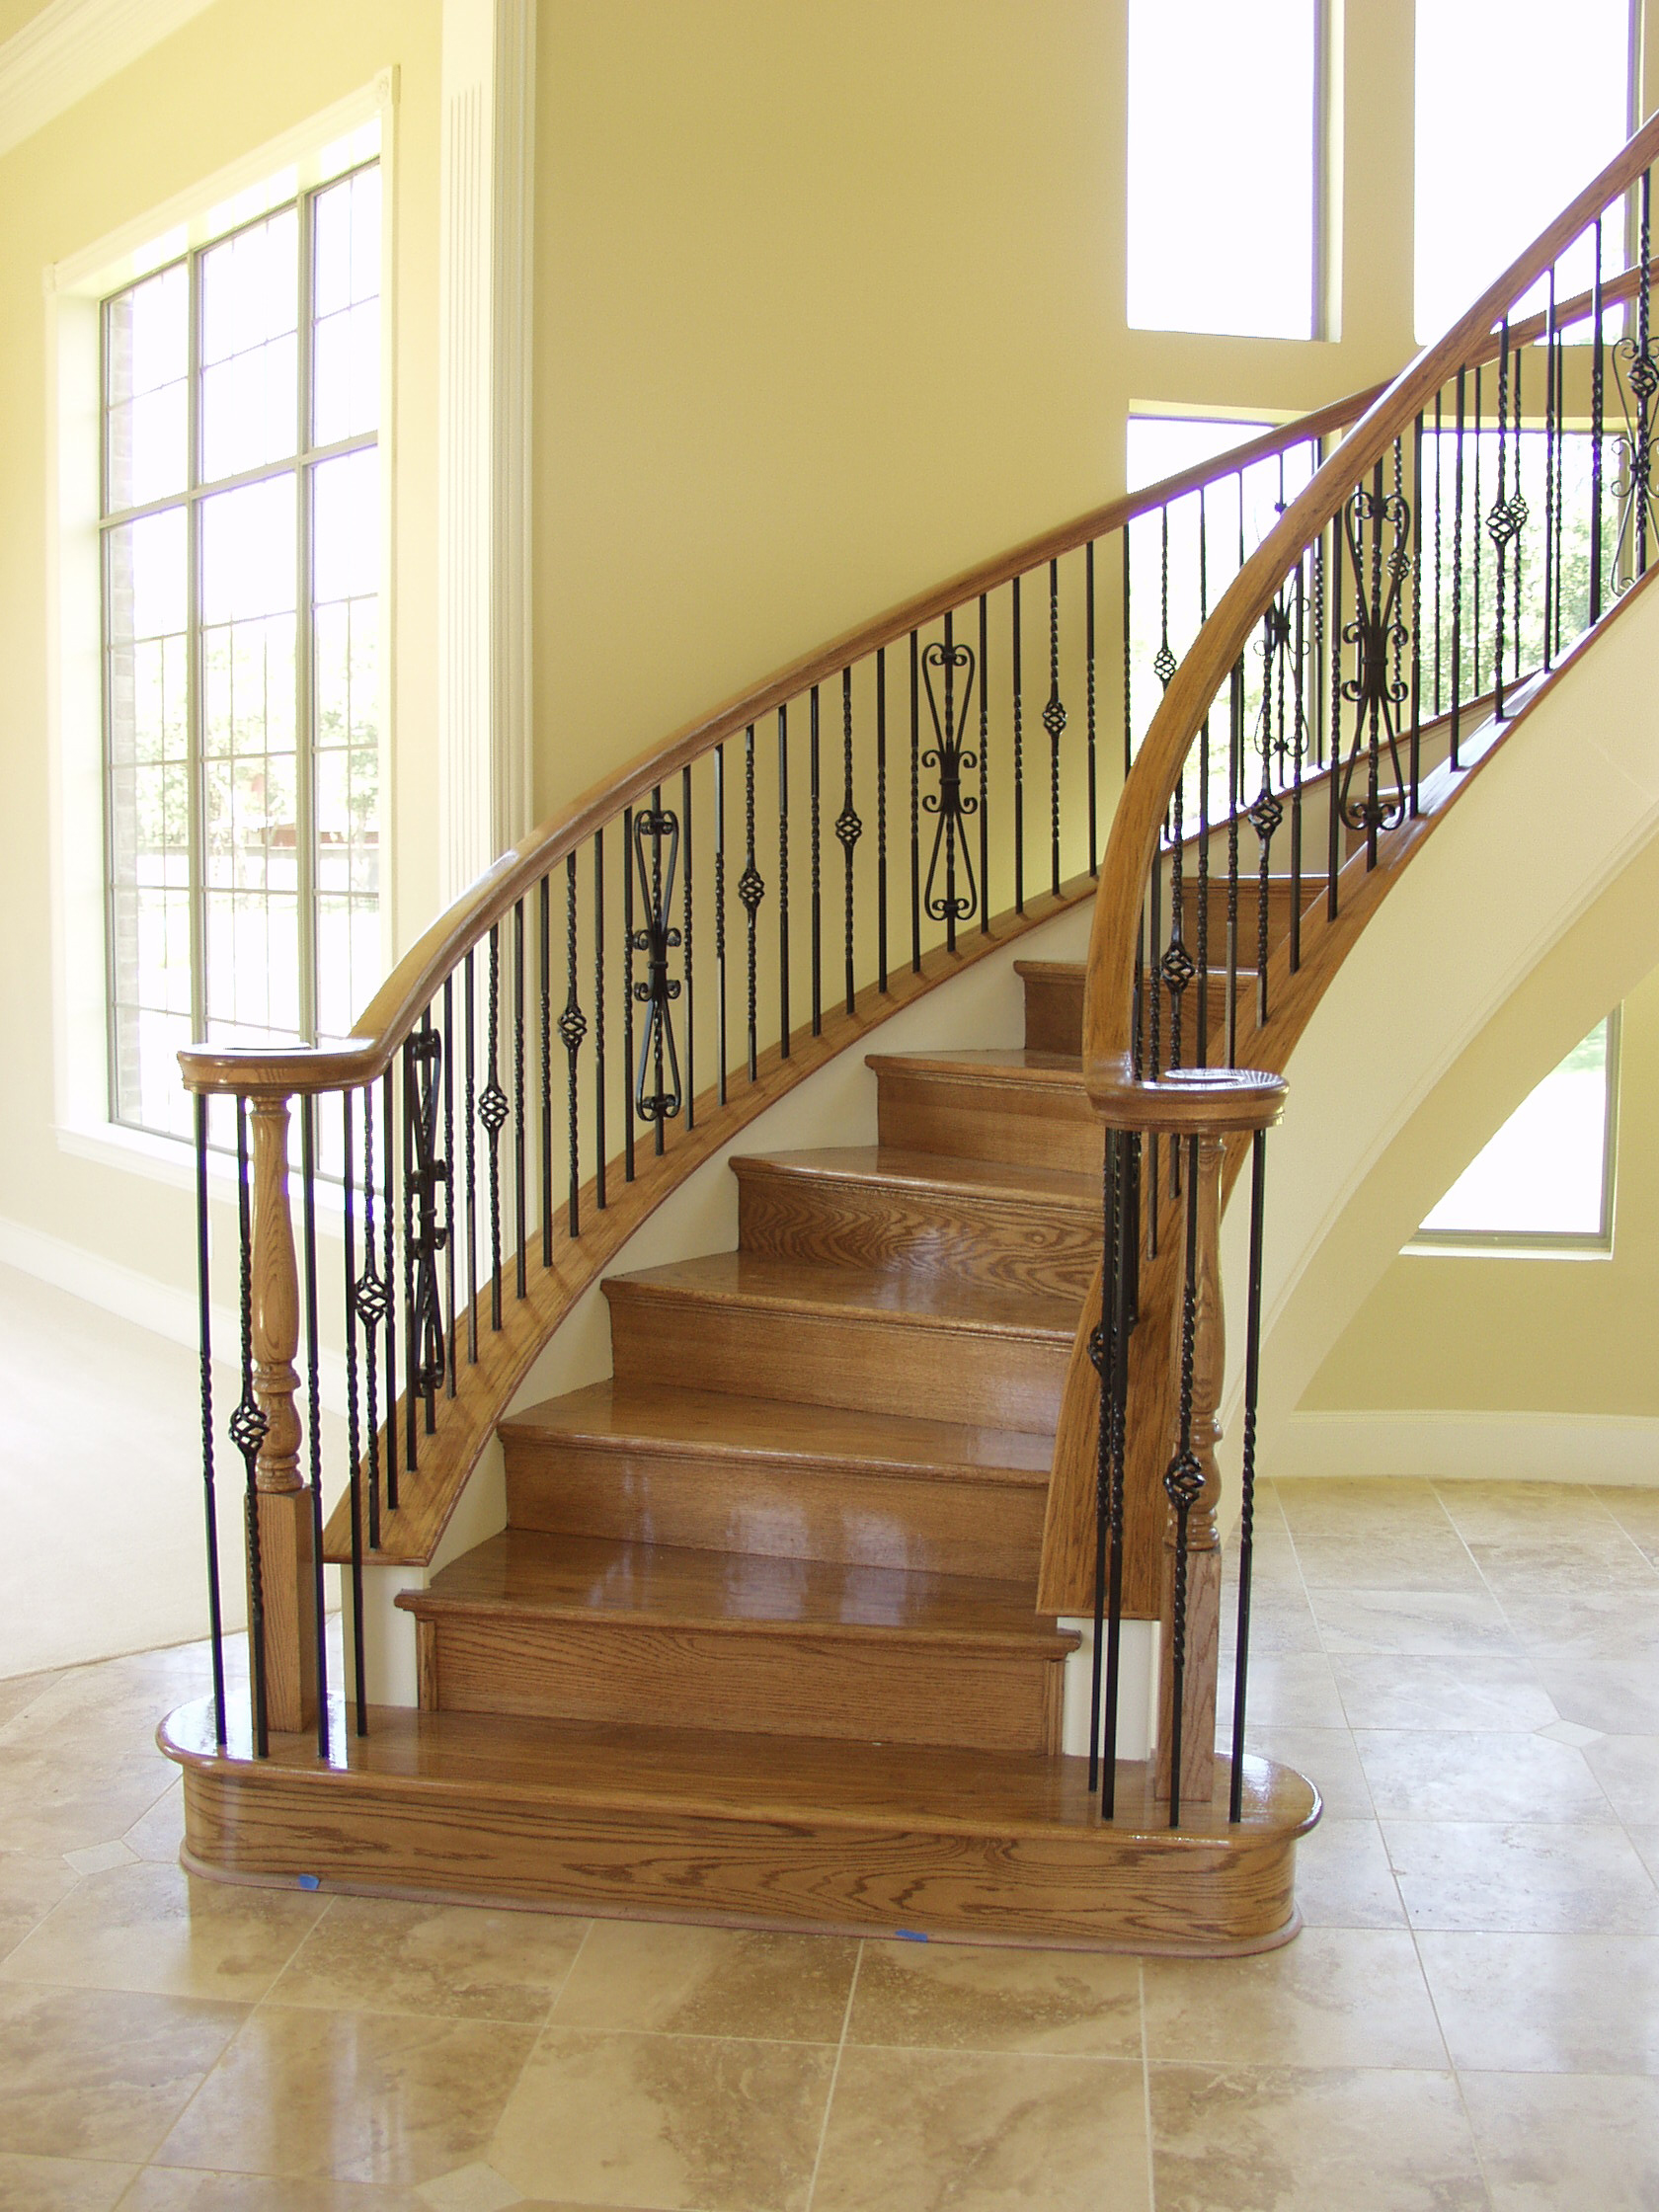 Woodworking equipment supplies houston guide tarman for Stair remodel houston